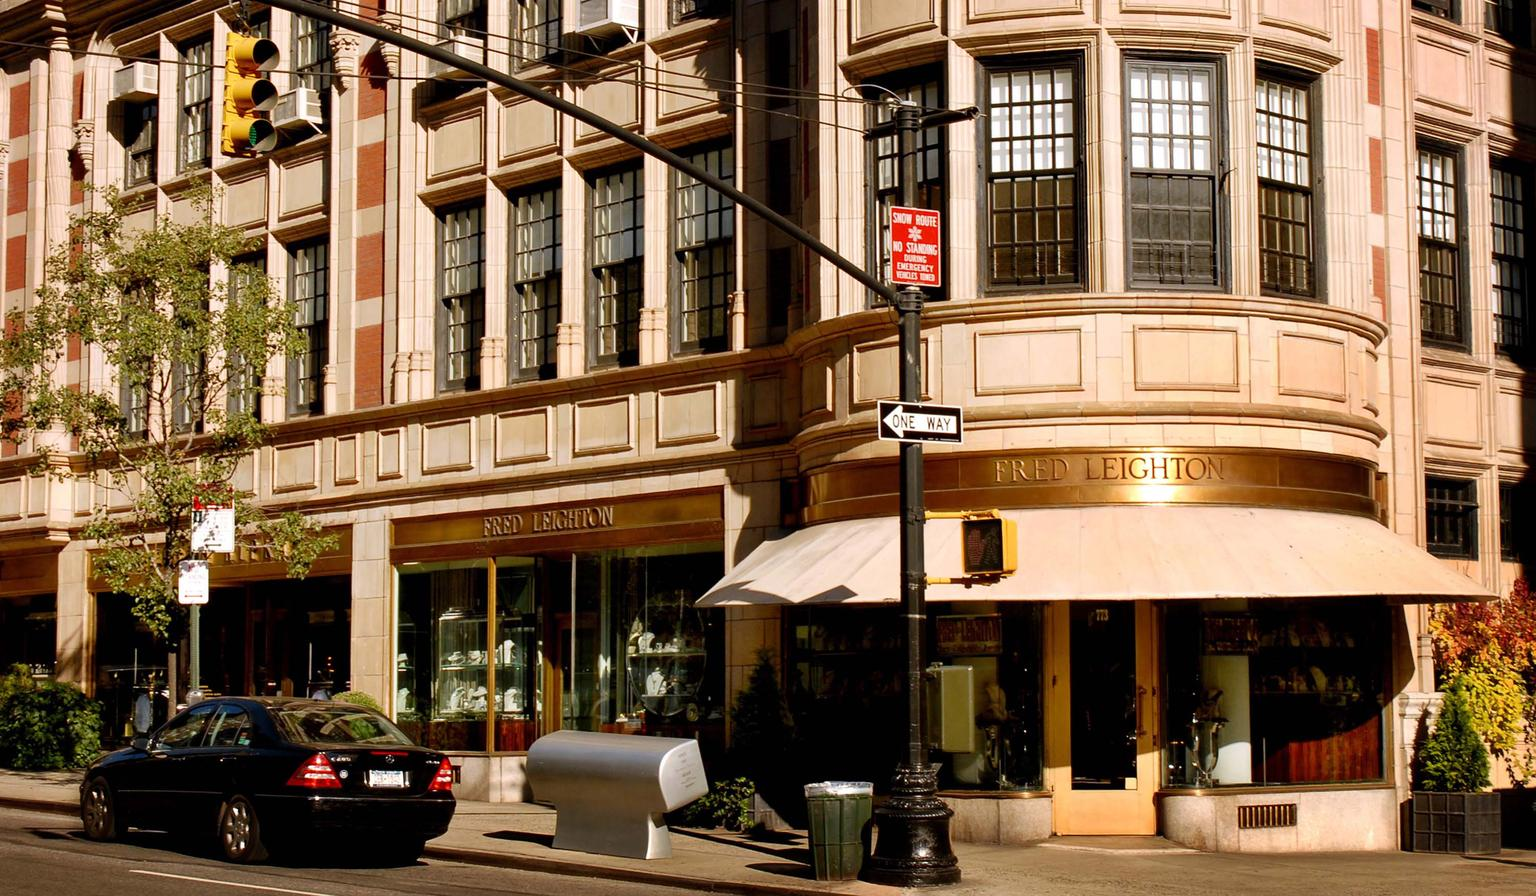 The largest emporium of antique and estate jewelry in New York is Fred Leighton, which started out in Manhattan's Greenwich Village before moving uptown to Madison Avenue in 1984.